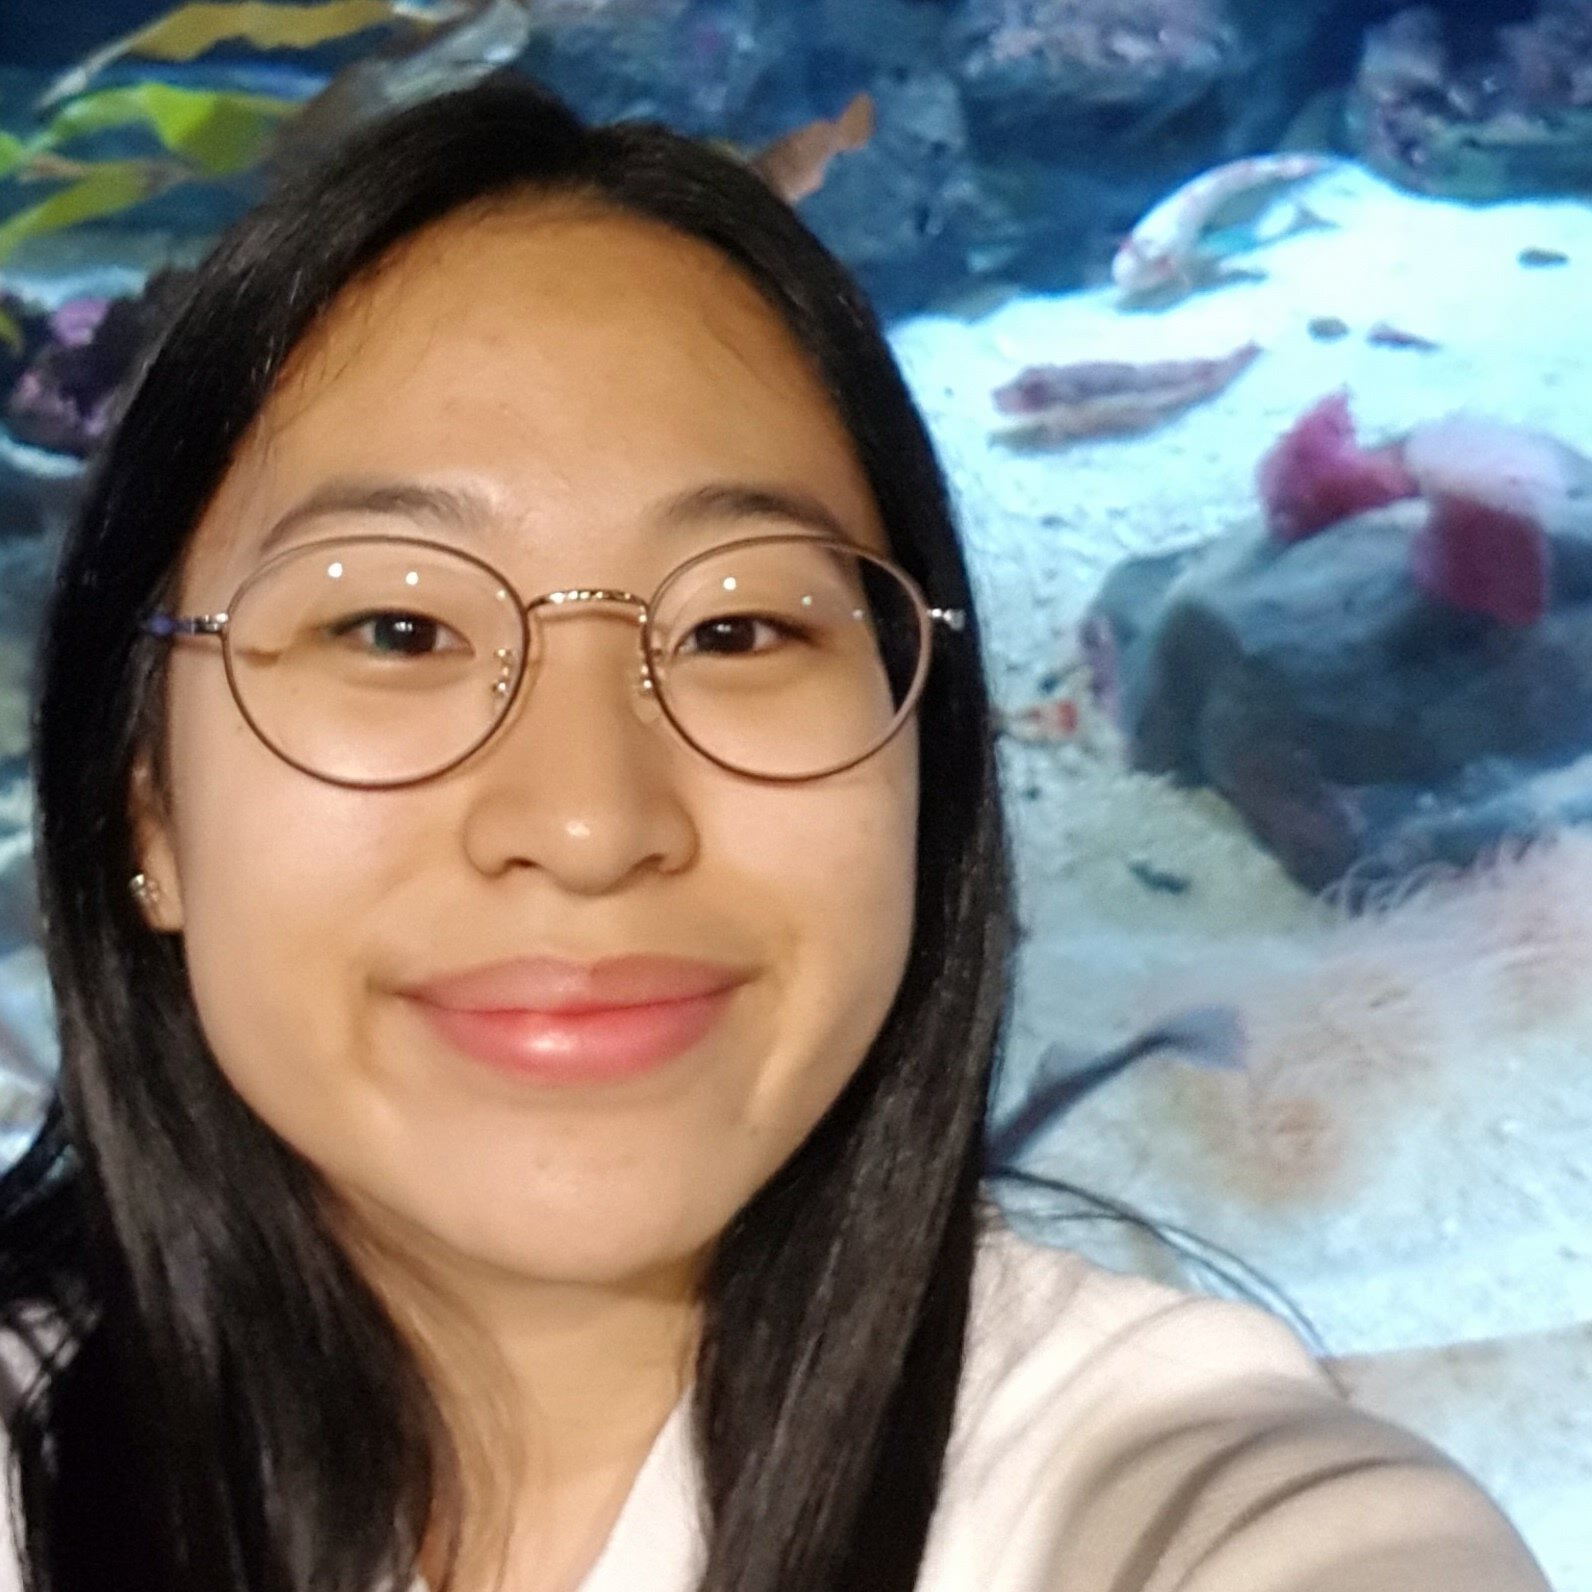 """Grace Kim    Pronouns:  She/Her/Hers   Academic Year:  Freshman   Major:  Biochemistry   Hometown:  New Jersey   Cultural Identity:  Korean American  """"My name is Grace Kim, but some call me Grass (김잔디 - brownie points if you got the reference to Boys over Flowers) because I like plants and have a garden back at home. Music is an integral part of my life - I've played the flute for years and am trying to pick up the piano. I'm an INFJ taurus in the year of the snake and my patronus is the king cobra. I like to spend time with my pals by watching k-dramas, movies, playing pokemon go, grabbing food, or cooking - I love a l l kinds of food."""""""